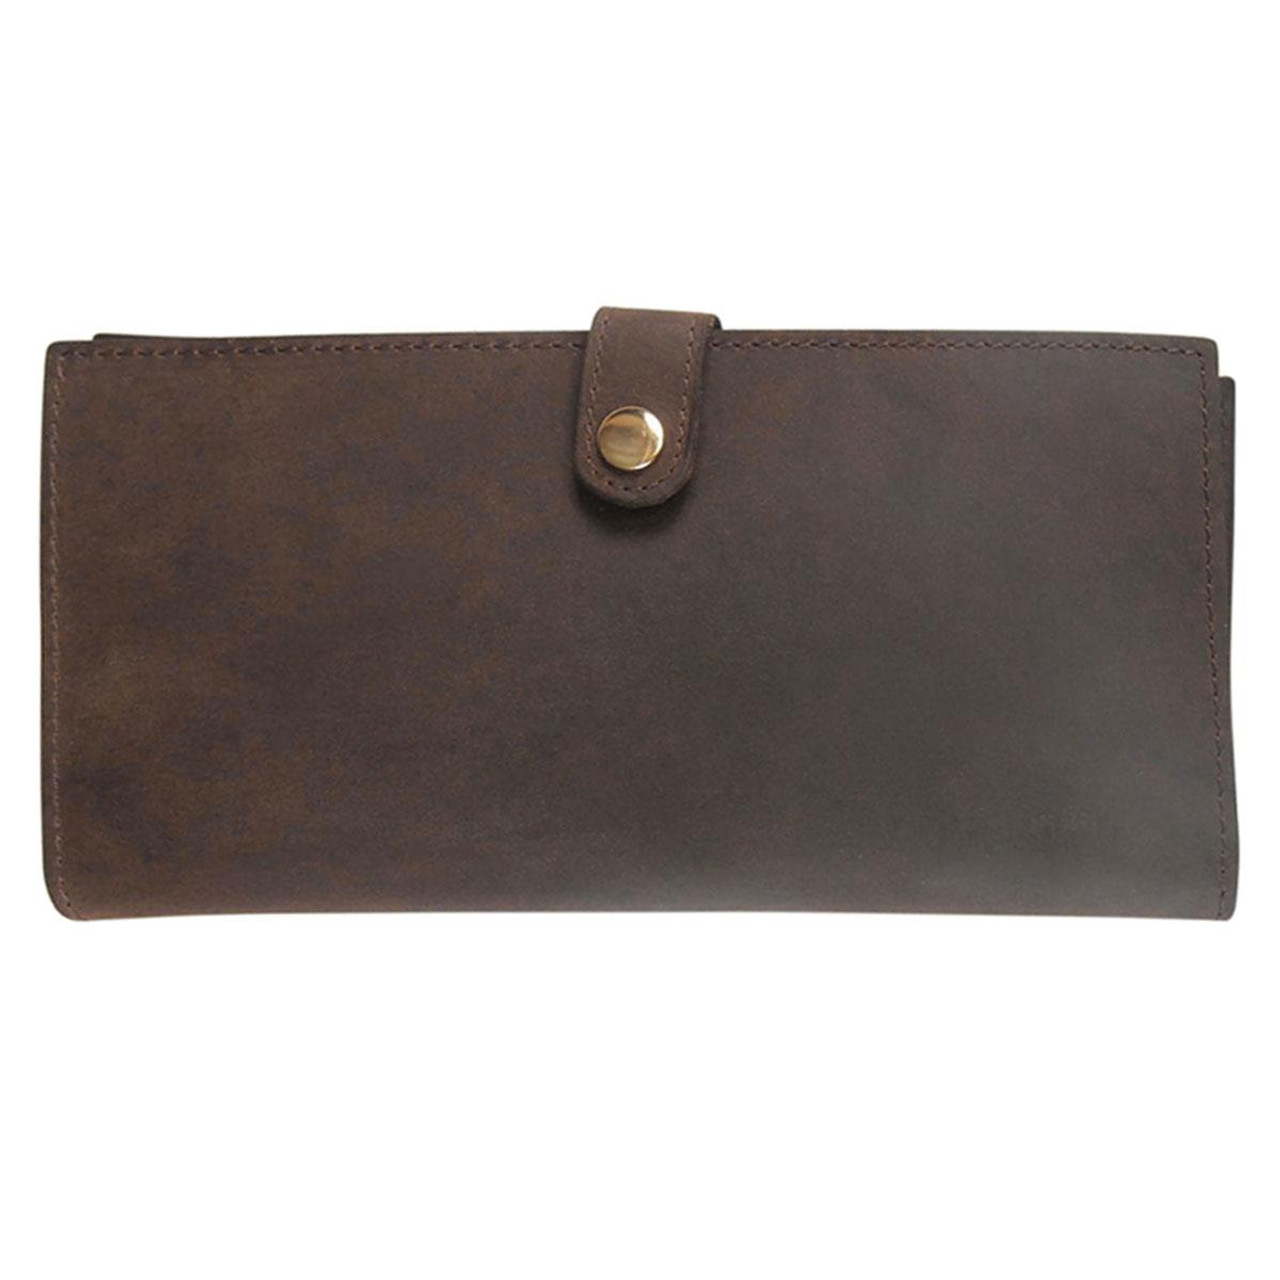 Teales Devonshire Double Leather Certificate Holder